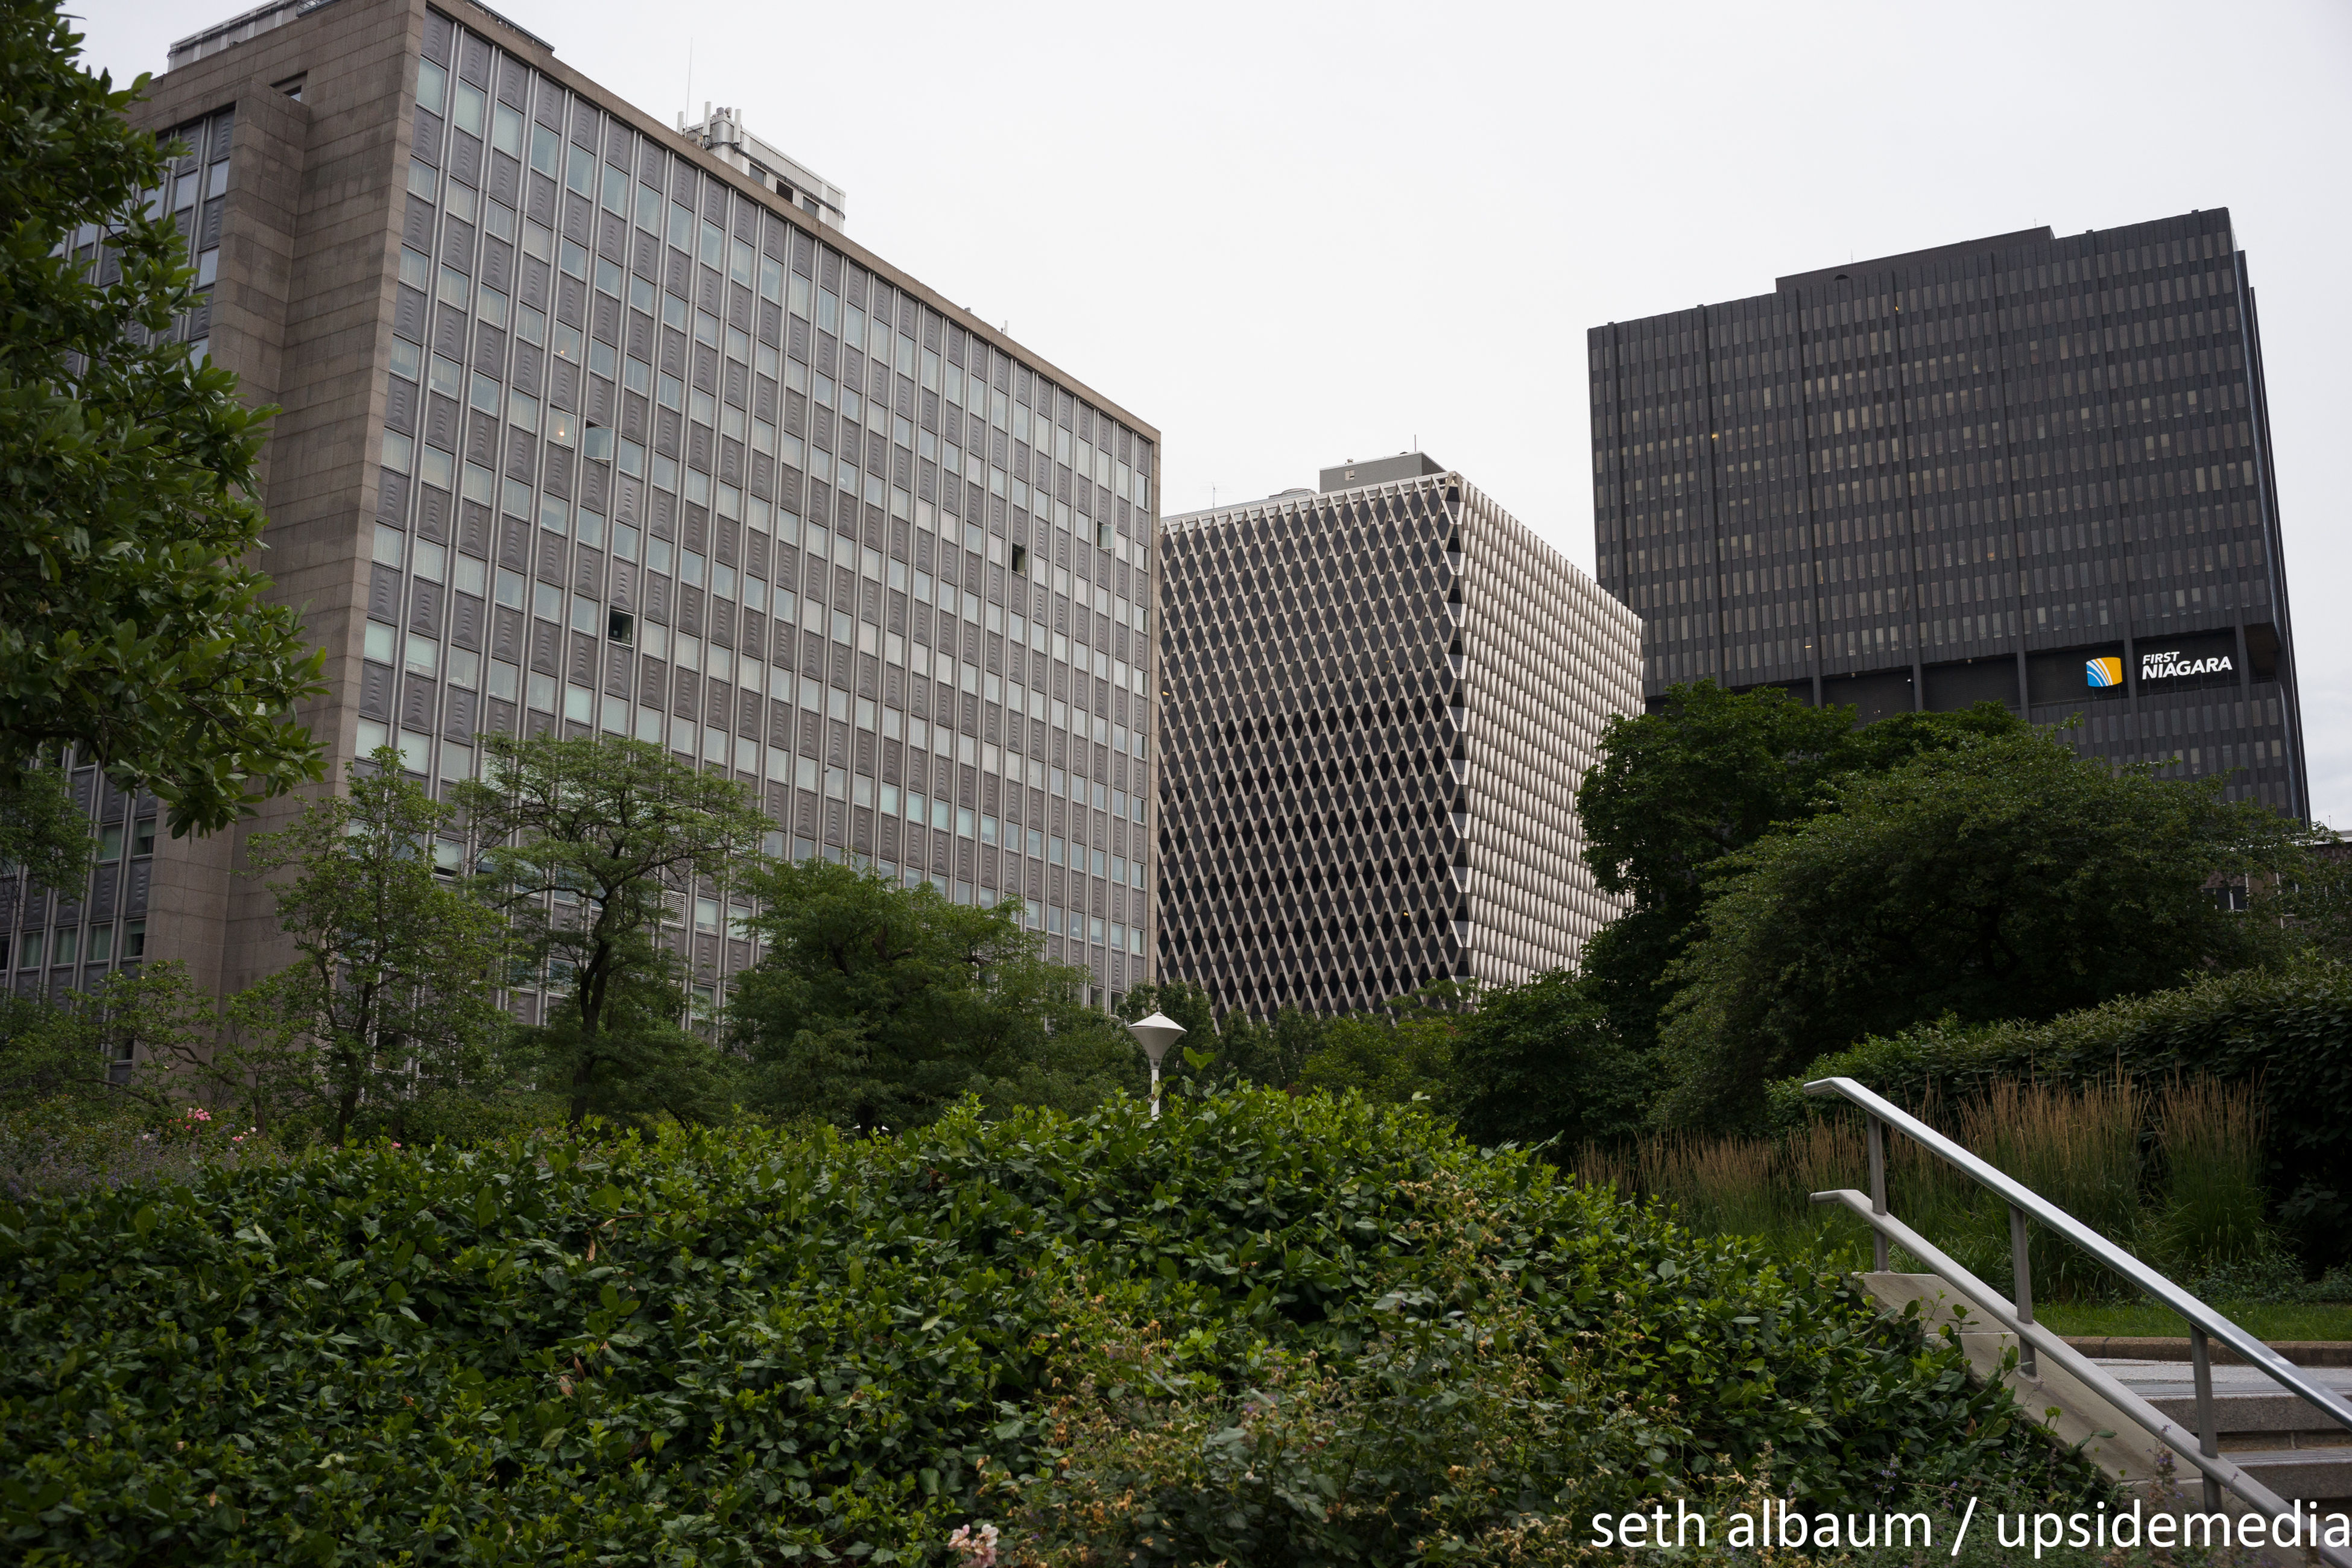 building exterior, architecture, built structure, tree, city, modern, office building, building, growth, skyscraper, sky, day, tall - high, green color, outdoors, no people, city life, grass, plant, tall, nature, green, development